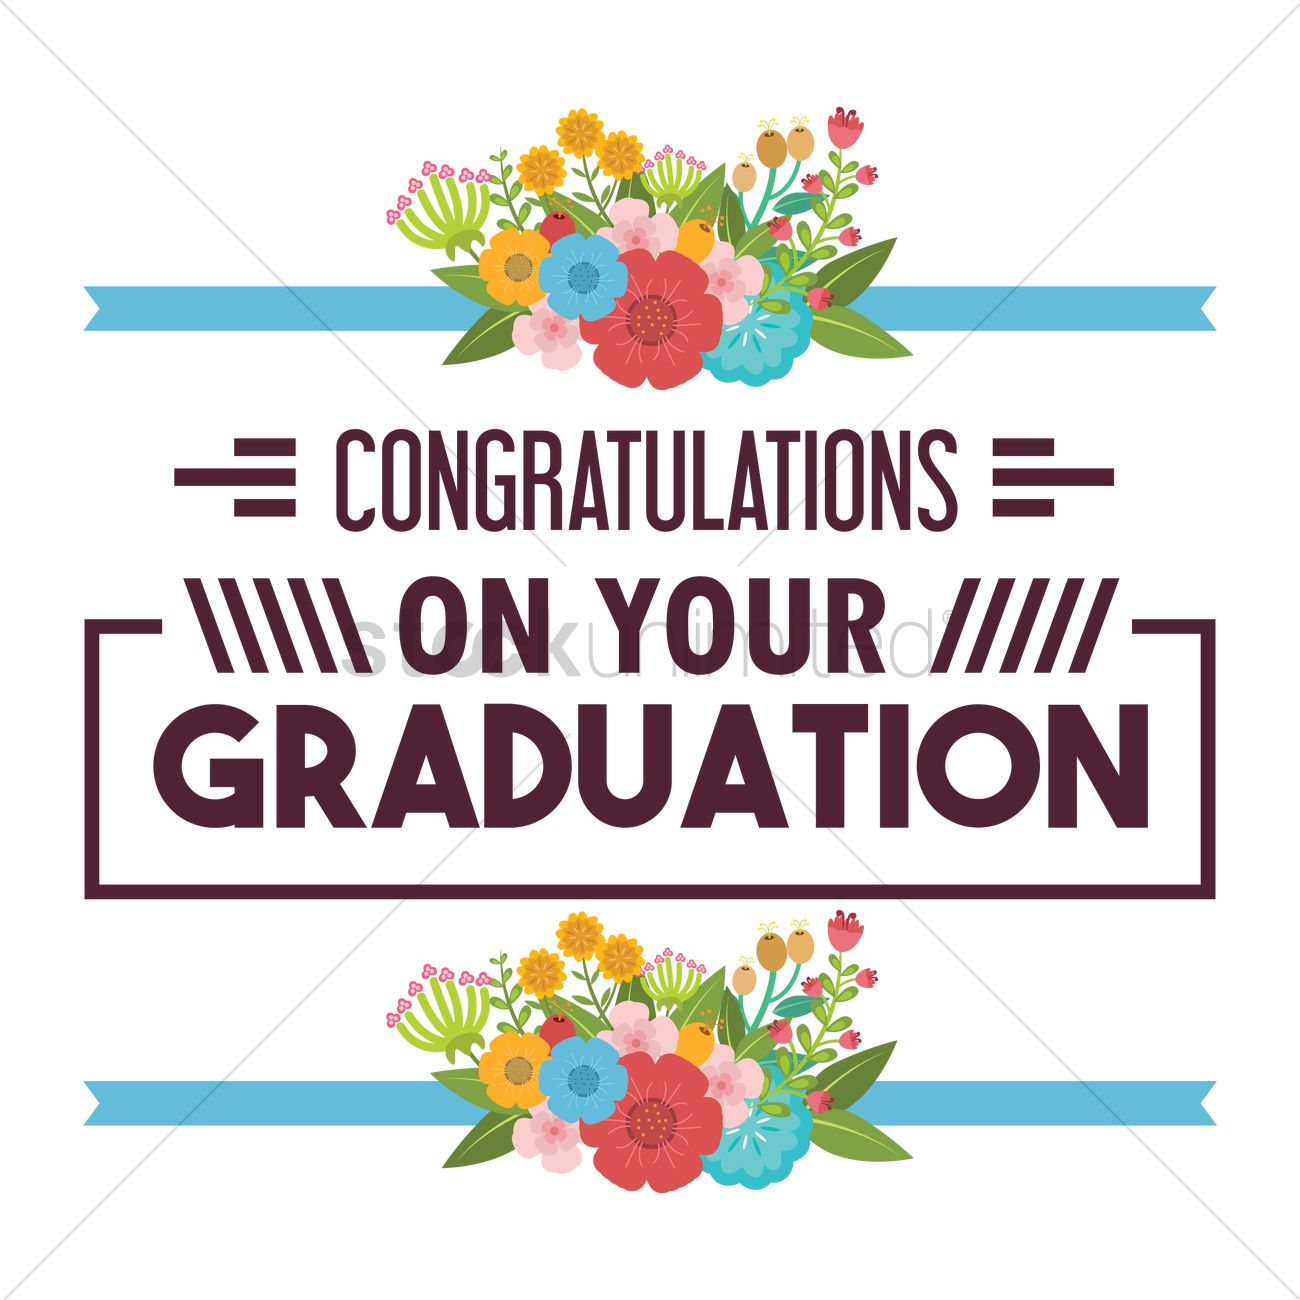 Congratulations On Your Graduation Vector Image